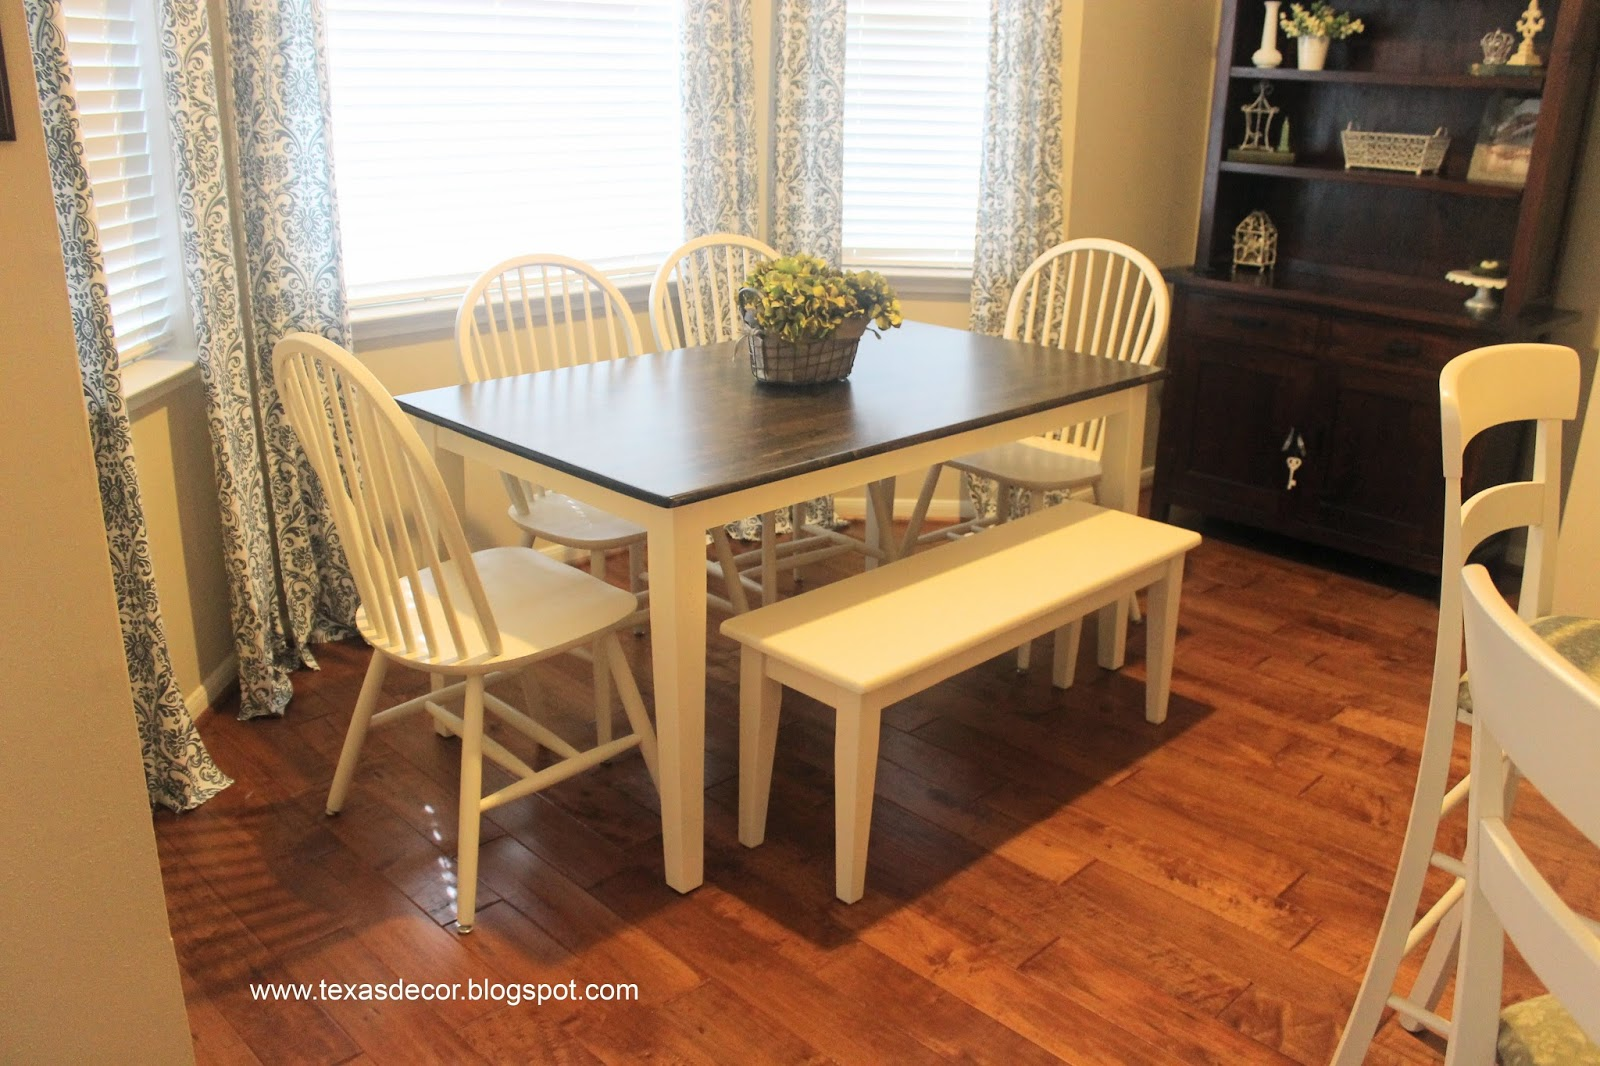 Texas decor painted and stained kitchen table a tutorial - Restaining kitchen table ...